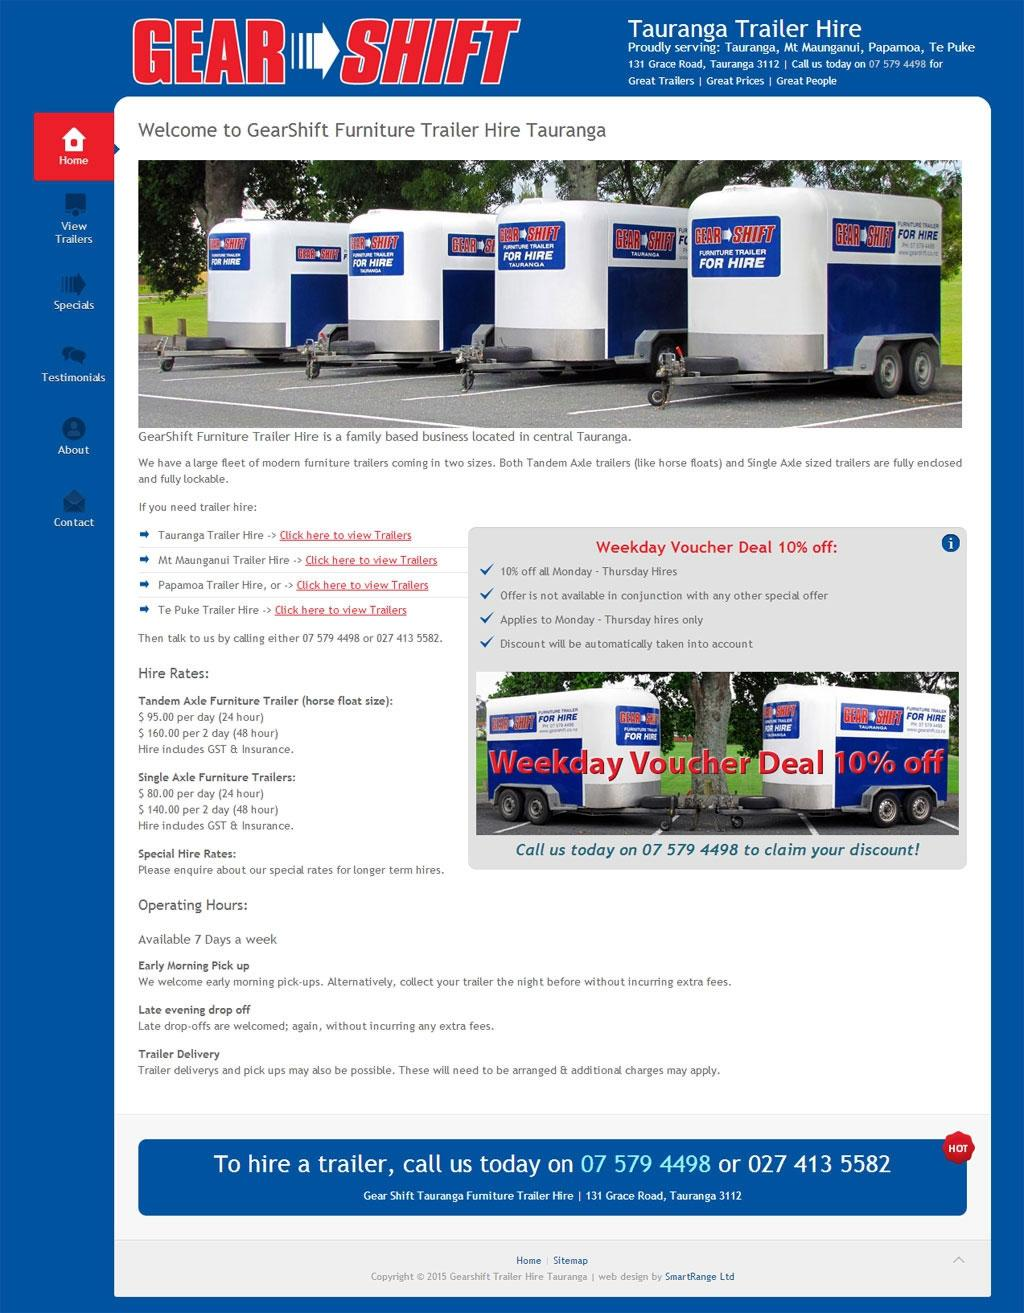 GearShift Trailer Hire